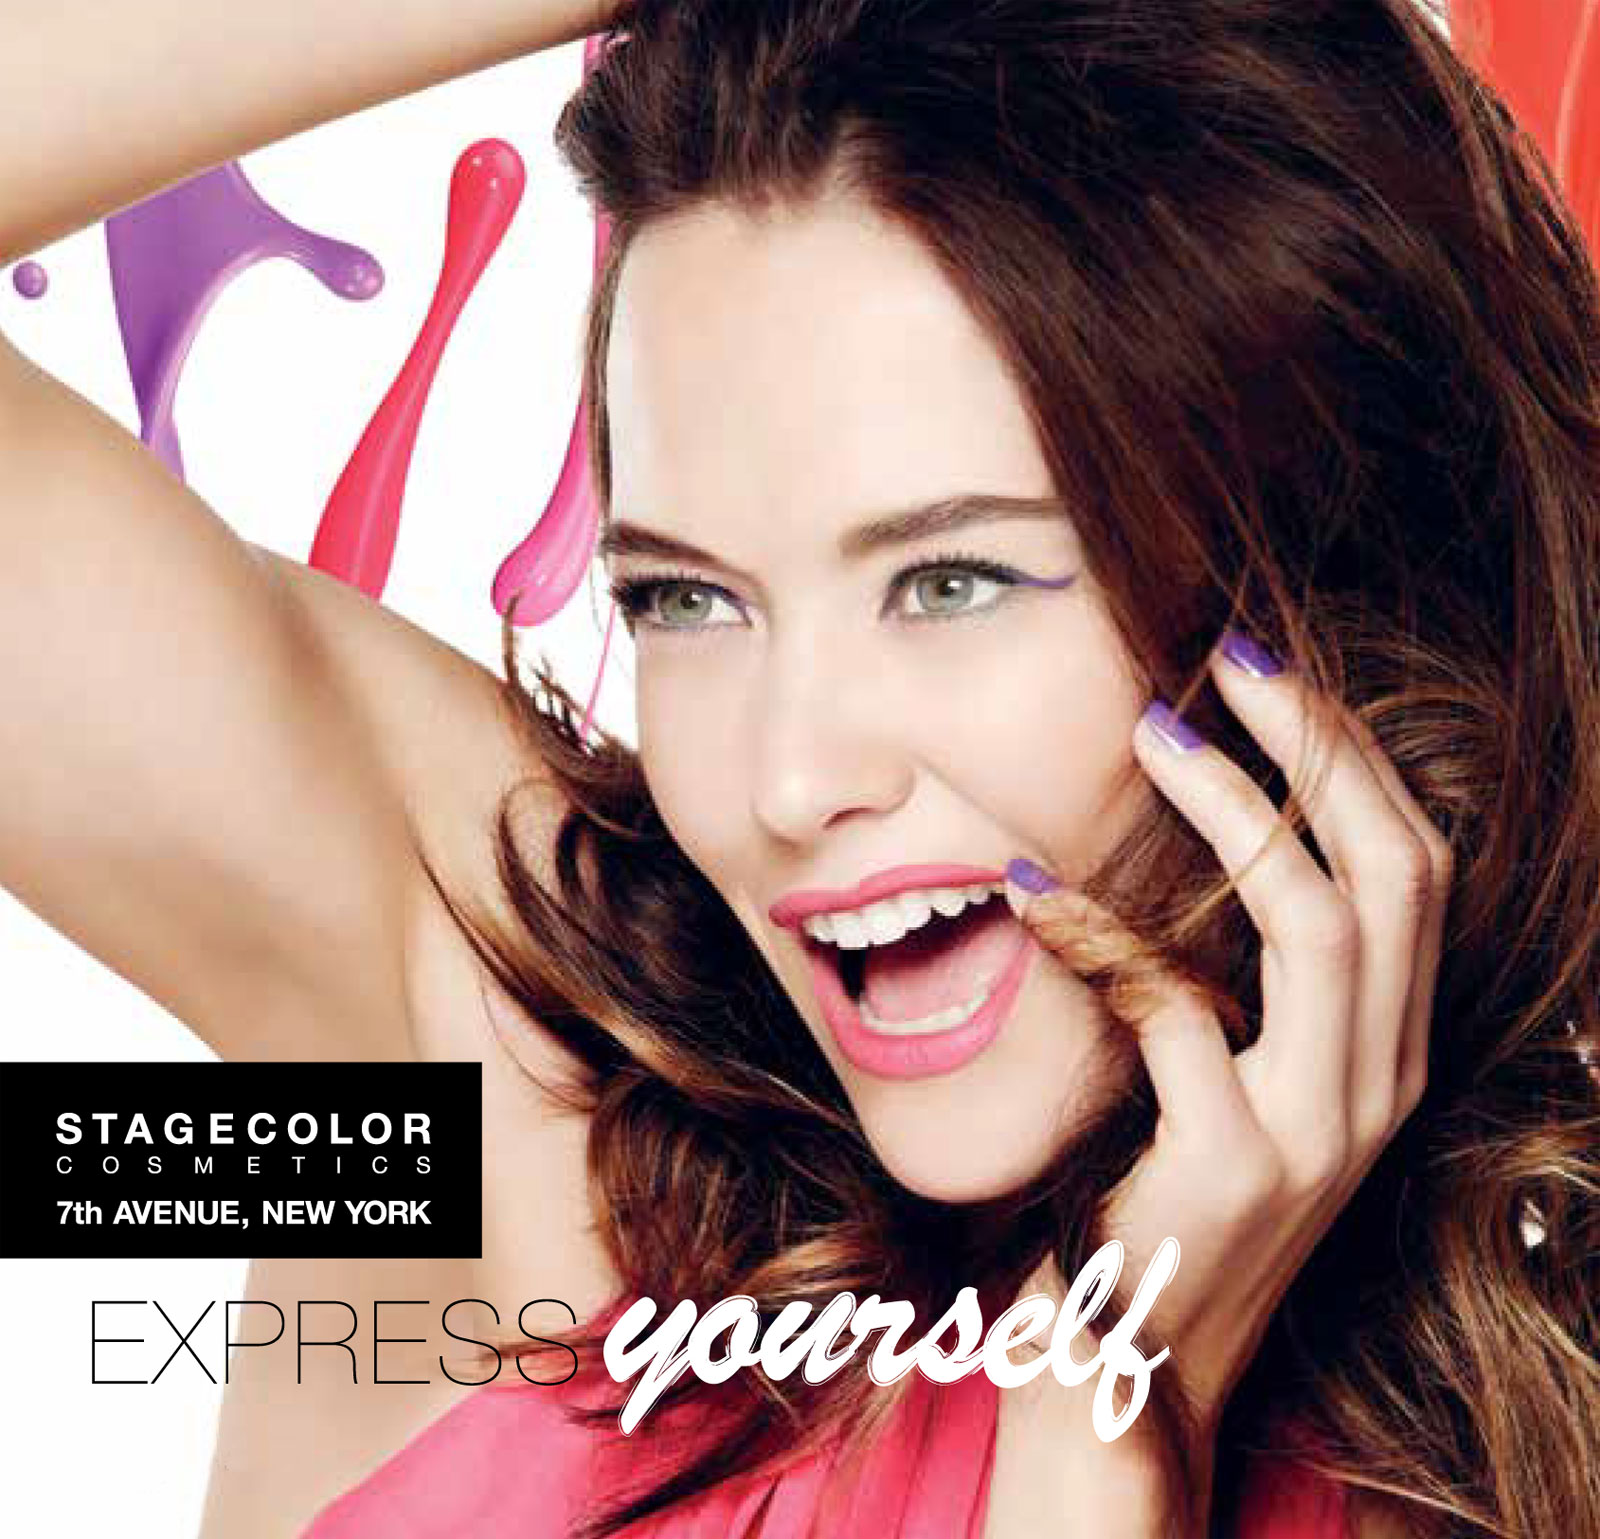 STAGECOLOR EXPRESS YOURSELF